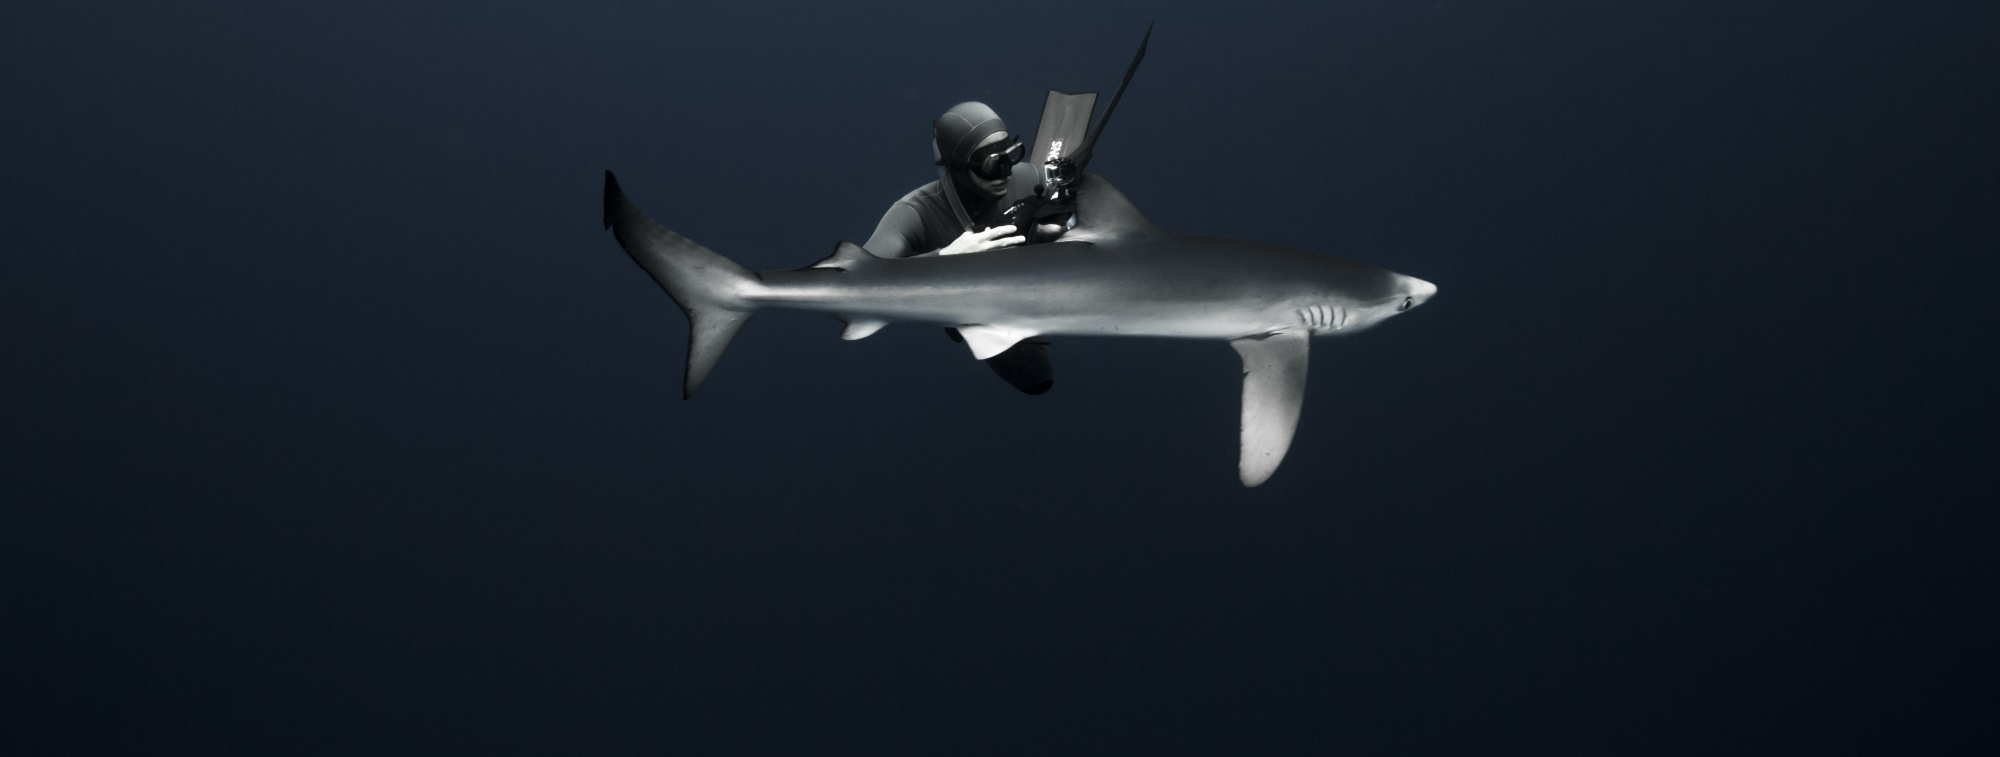 freediver and blue shark